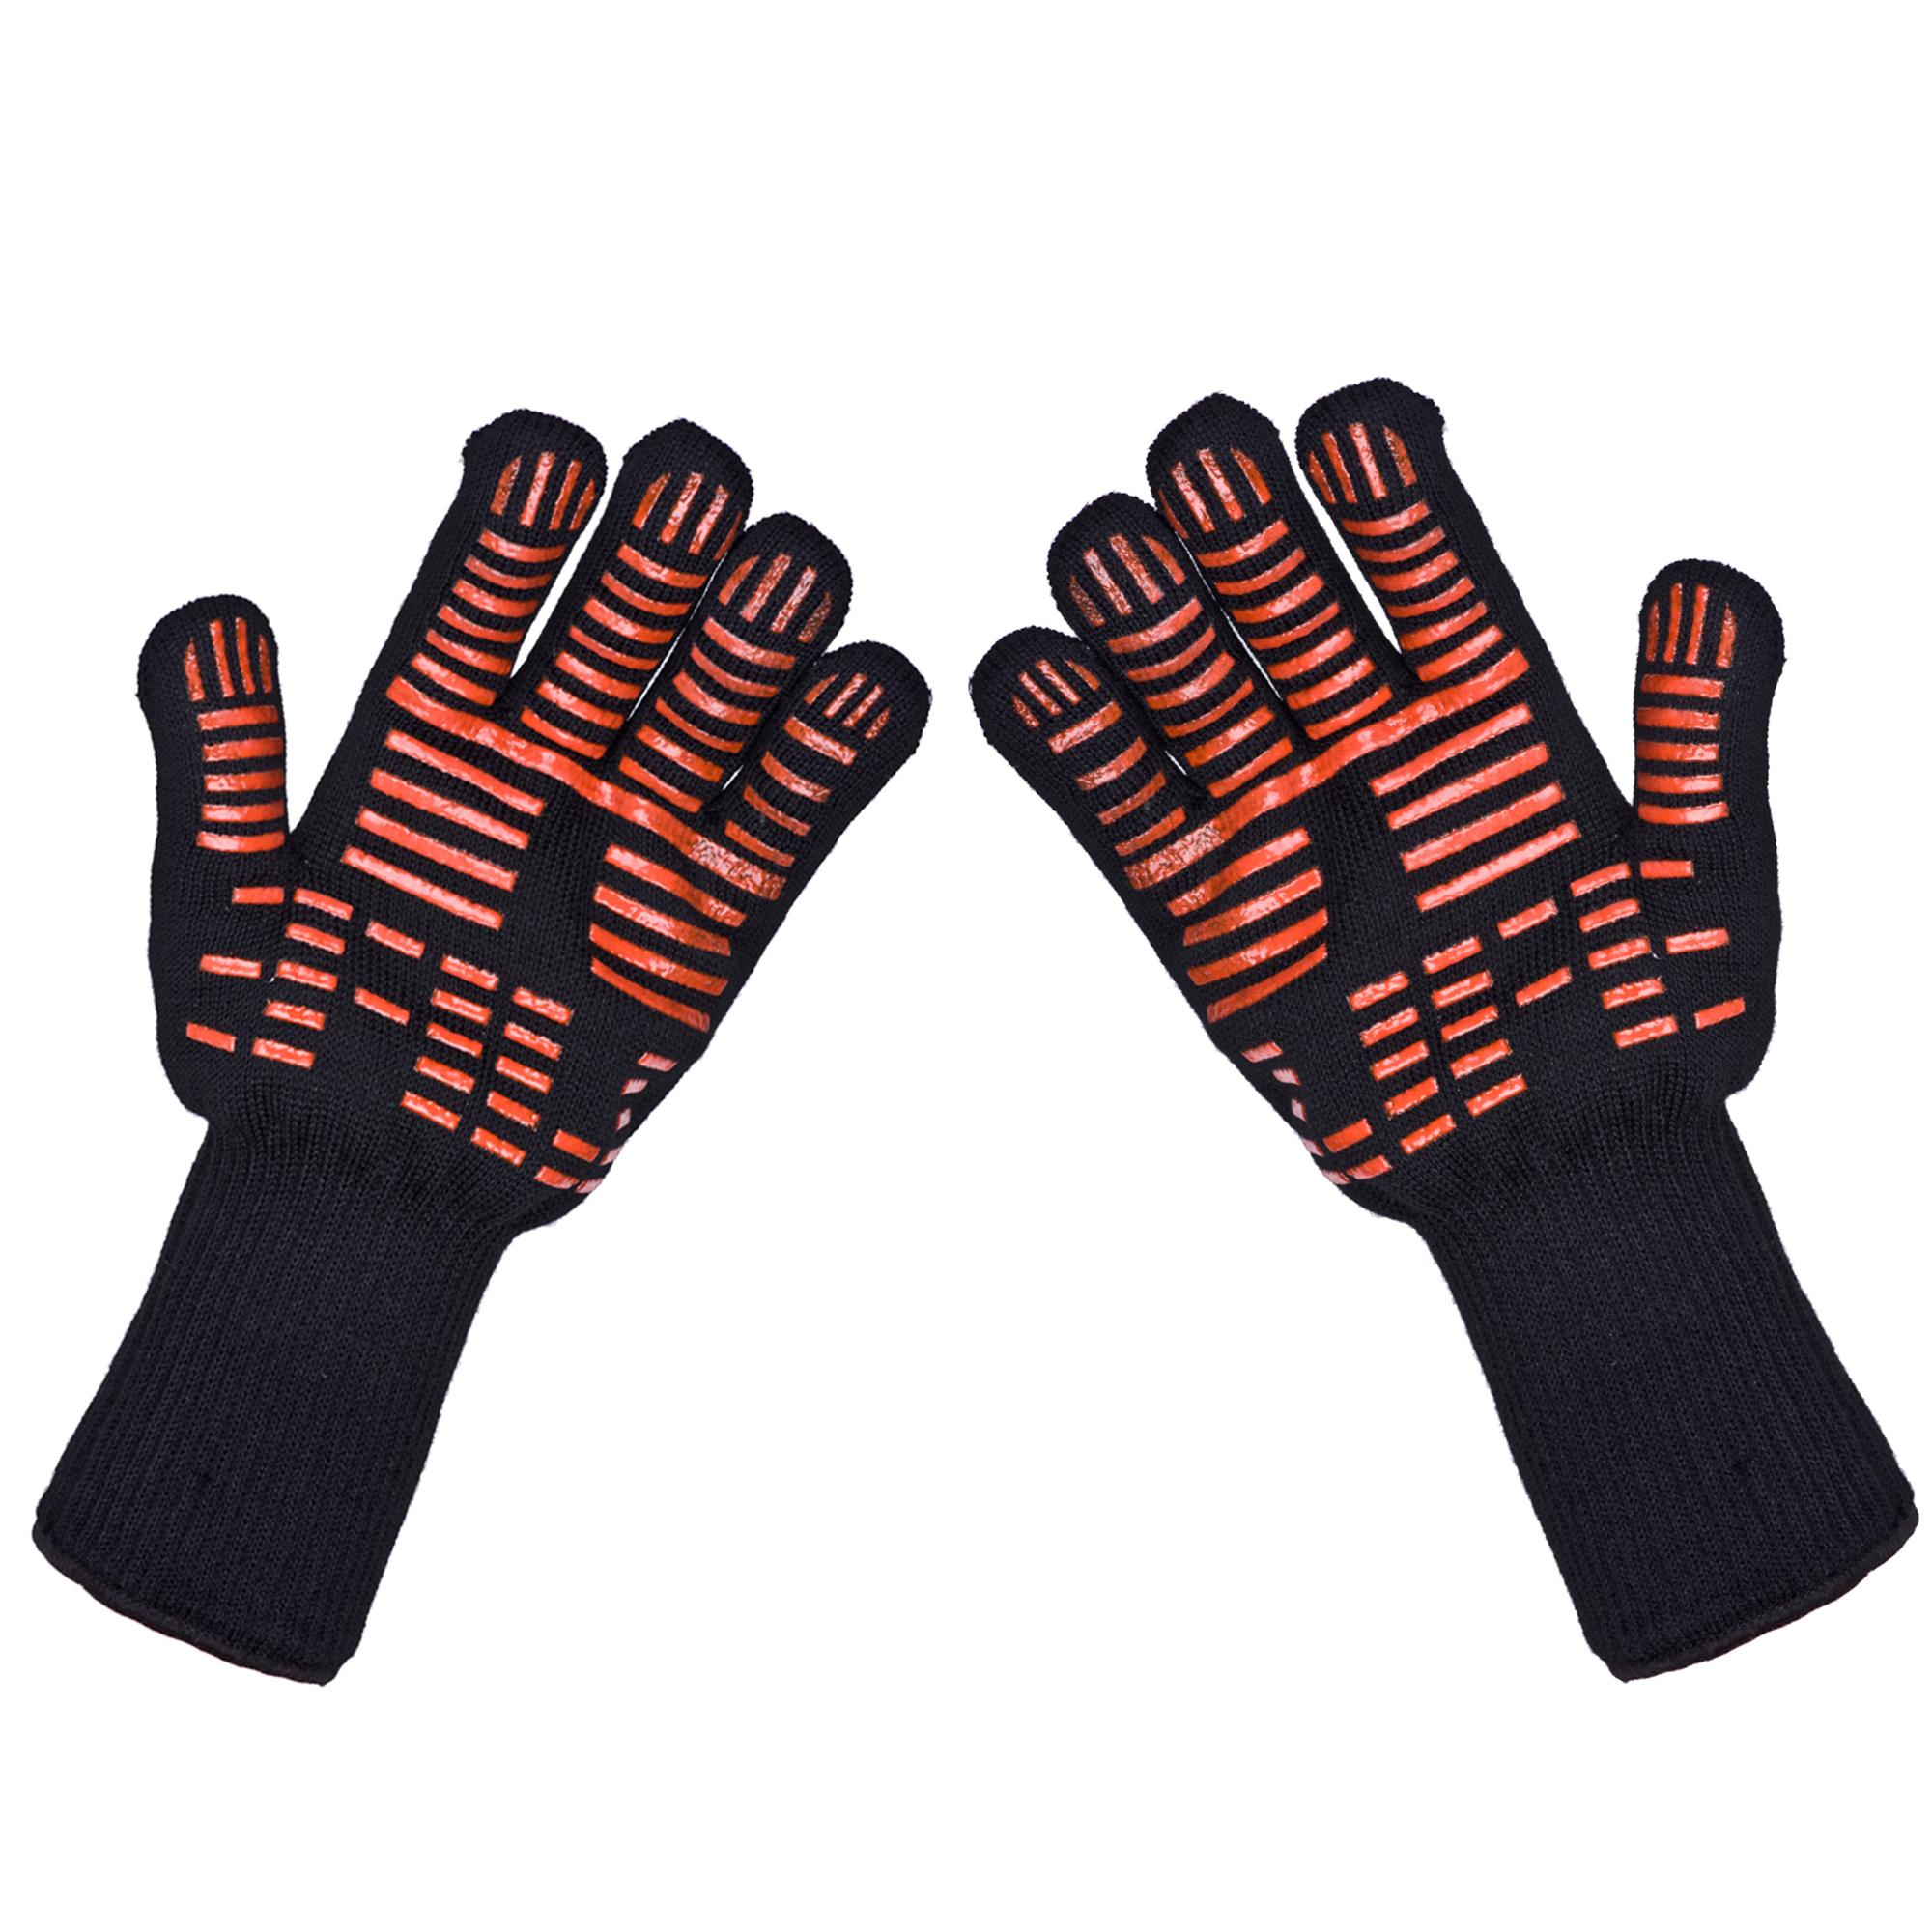 Extreme Heat Resistant Kitchen Barbecue Thick Silicon Oven Gloves ...